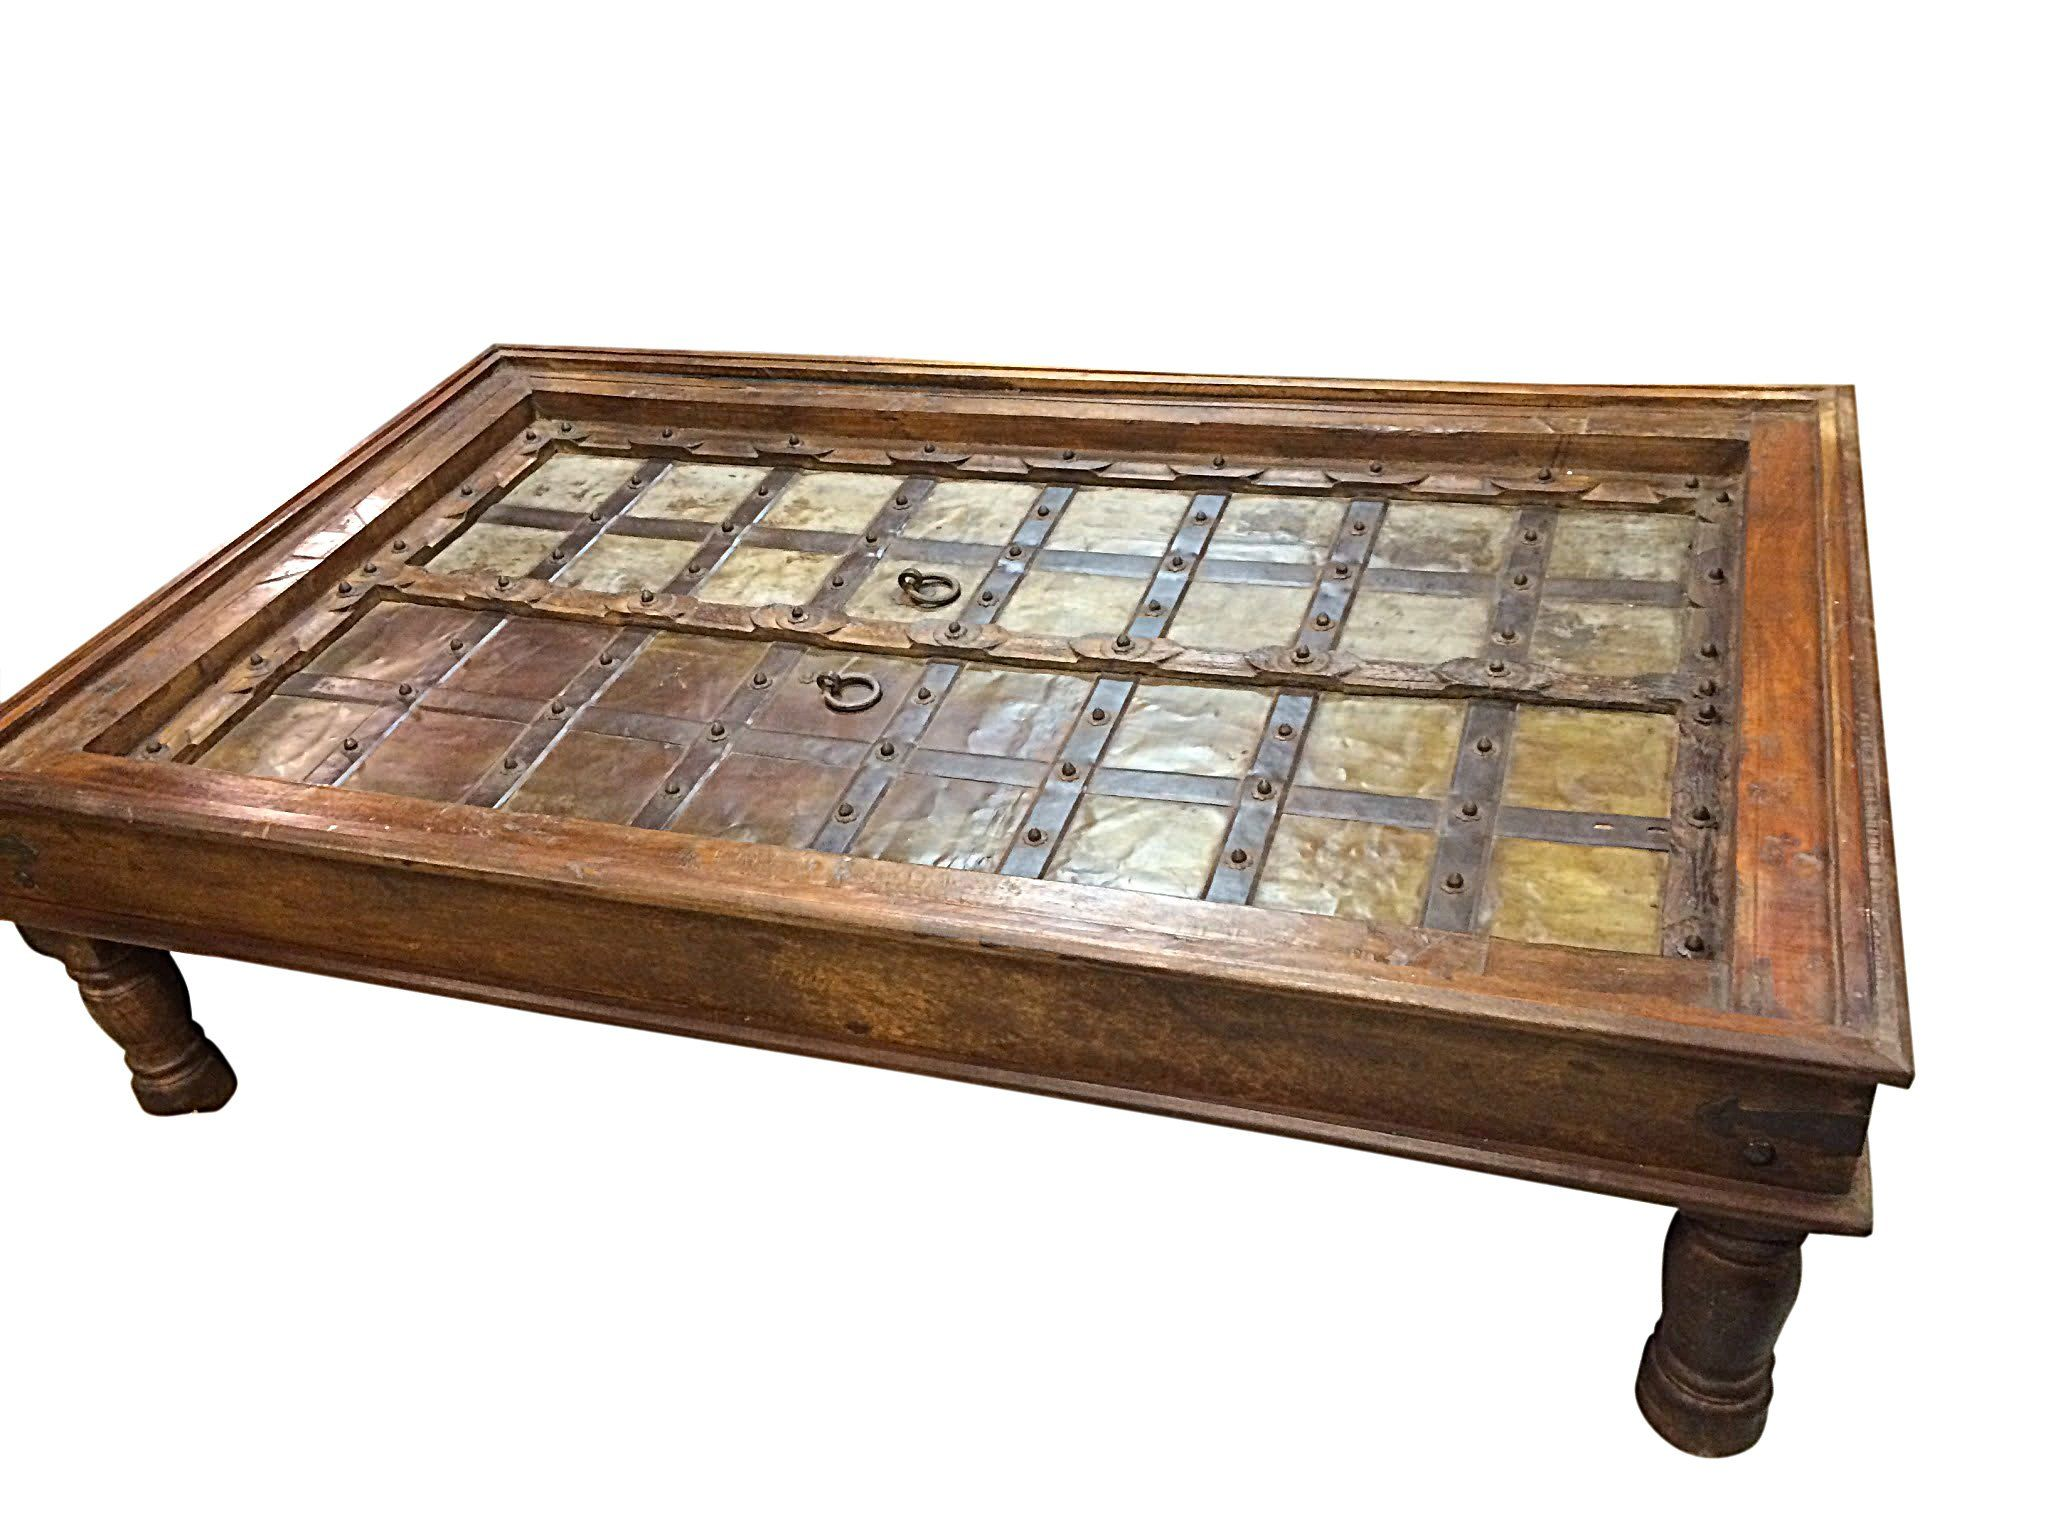 Antique Coffee TABLE INDIAN Furniture Handmade Wood Carving   Mughal Indian  Style Table Vintage Patinas